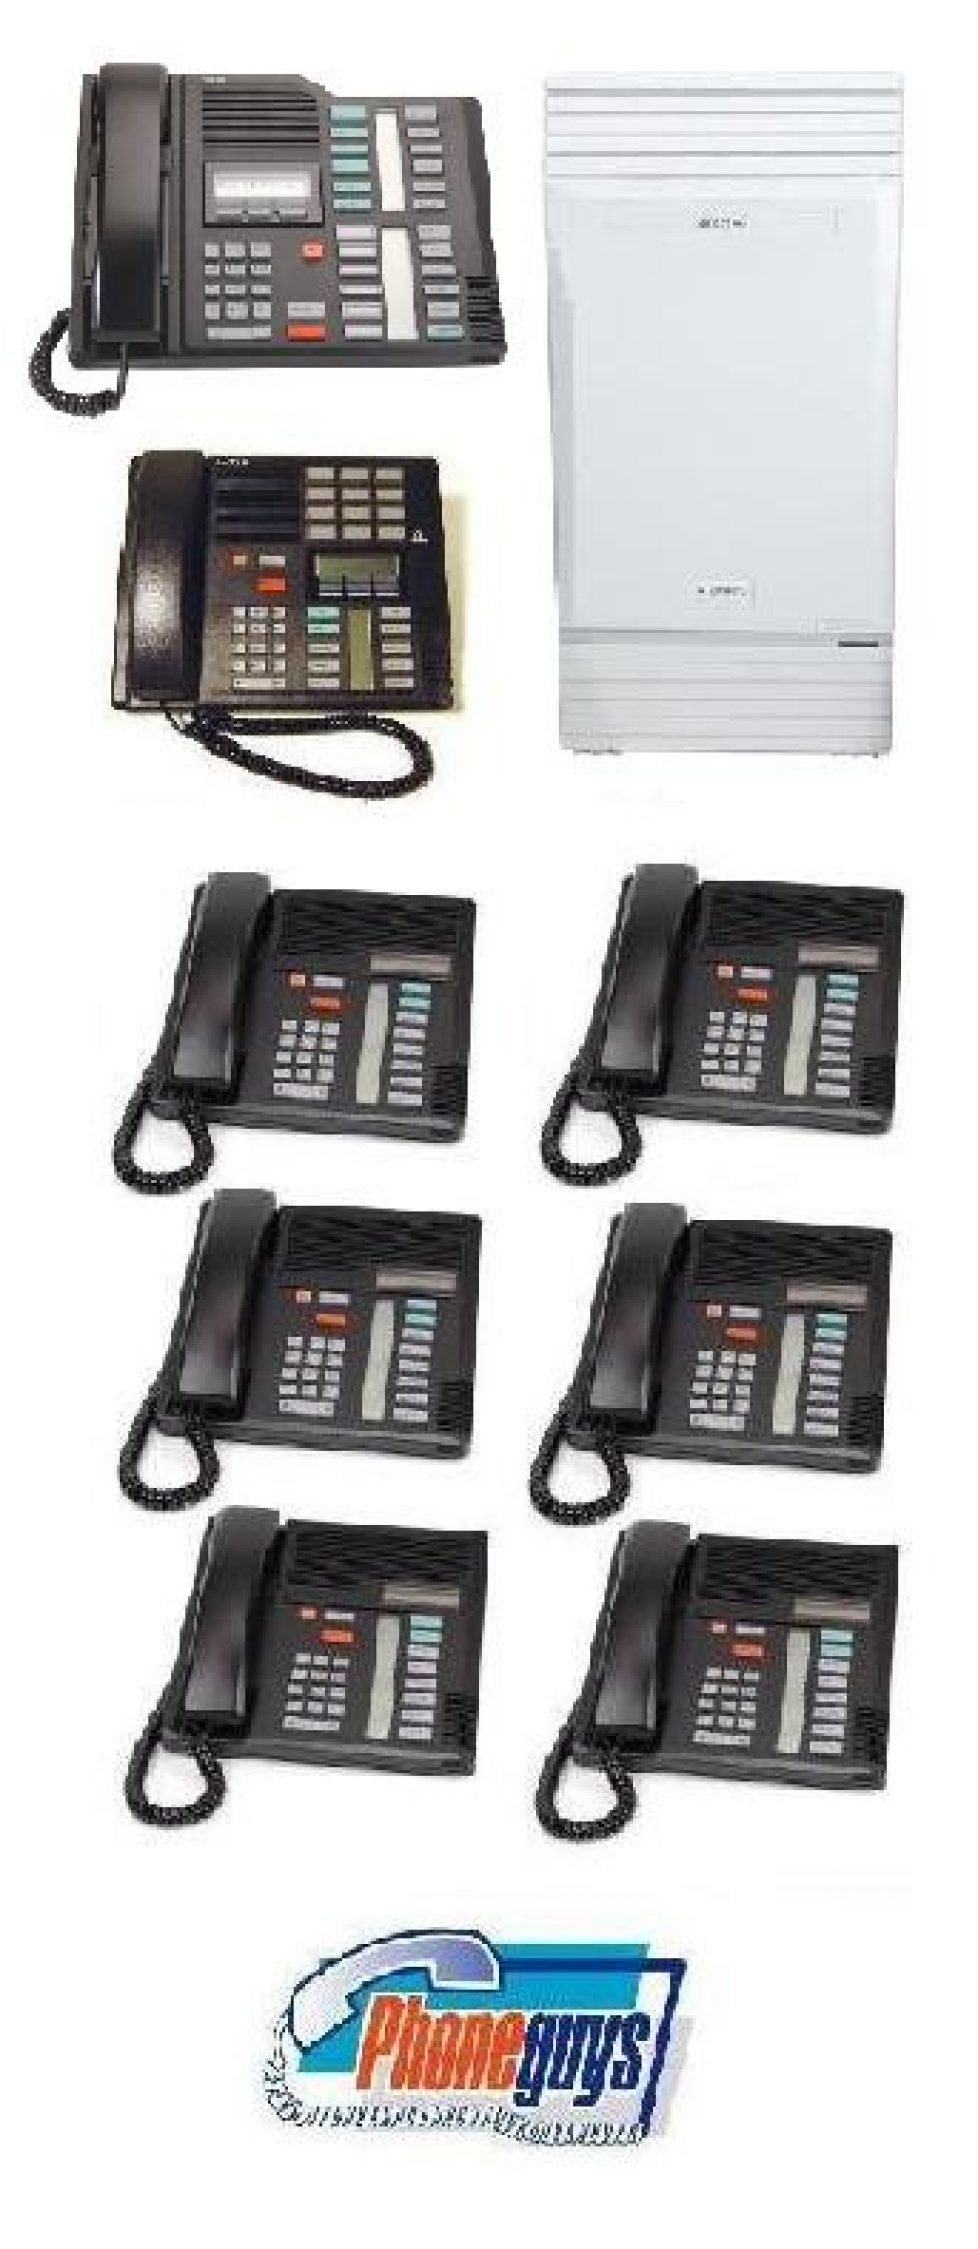 Modular ICS with 1-M7324 1-M7310 6-M7208 Phones